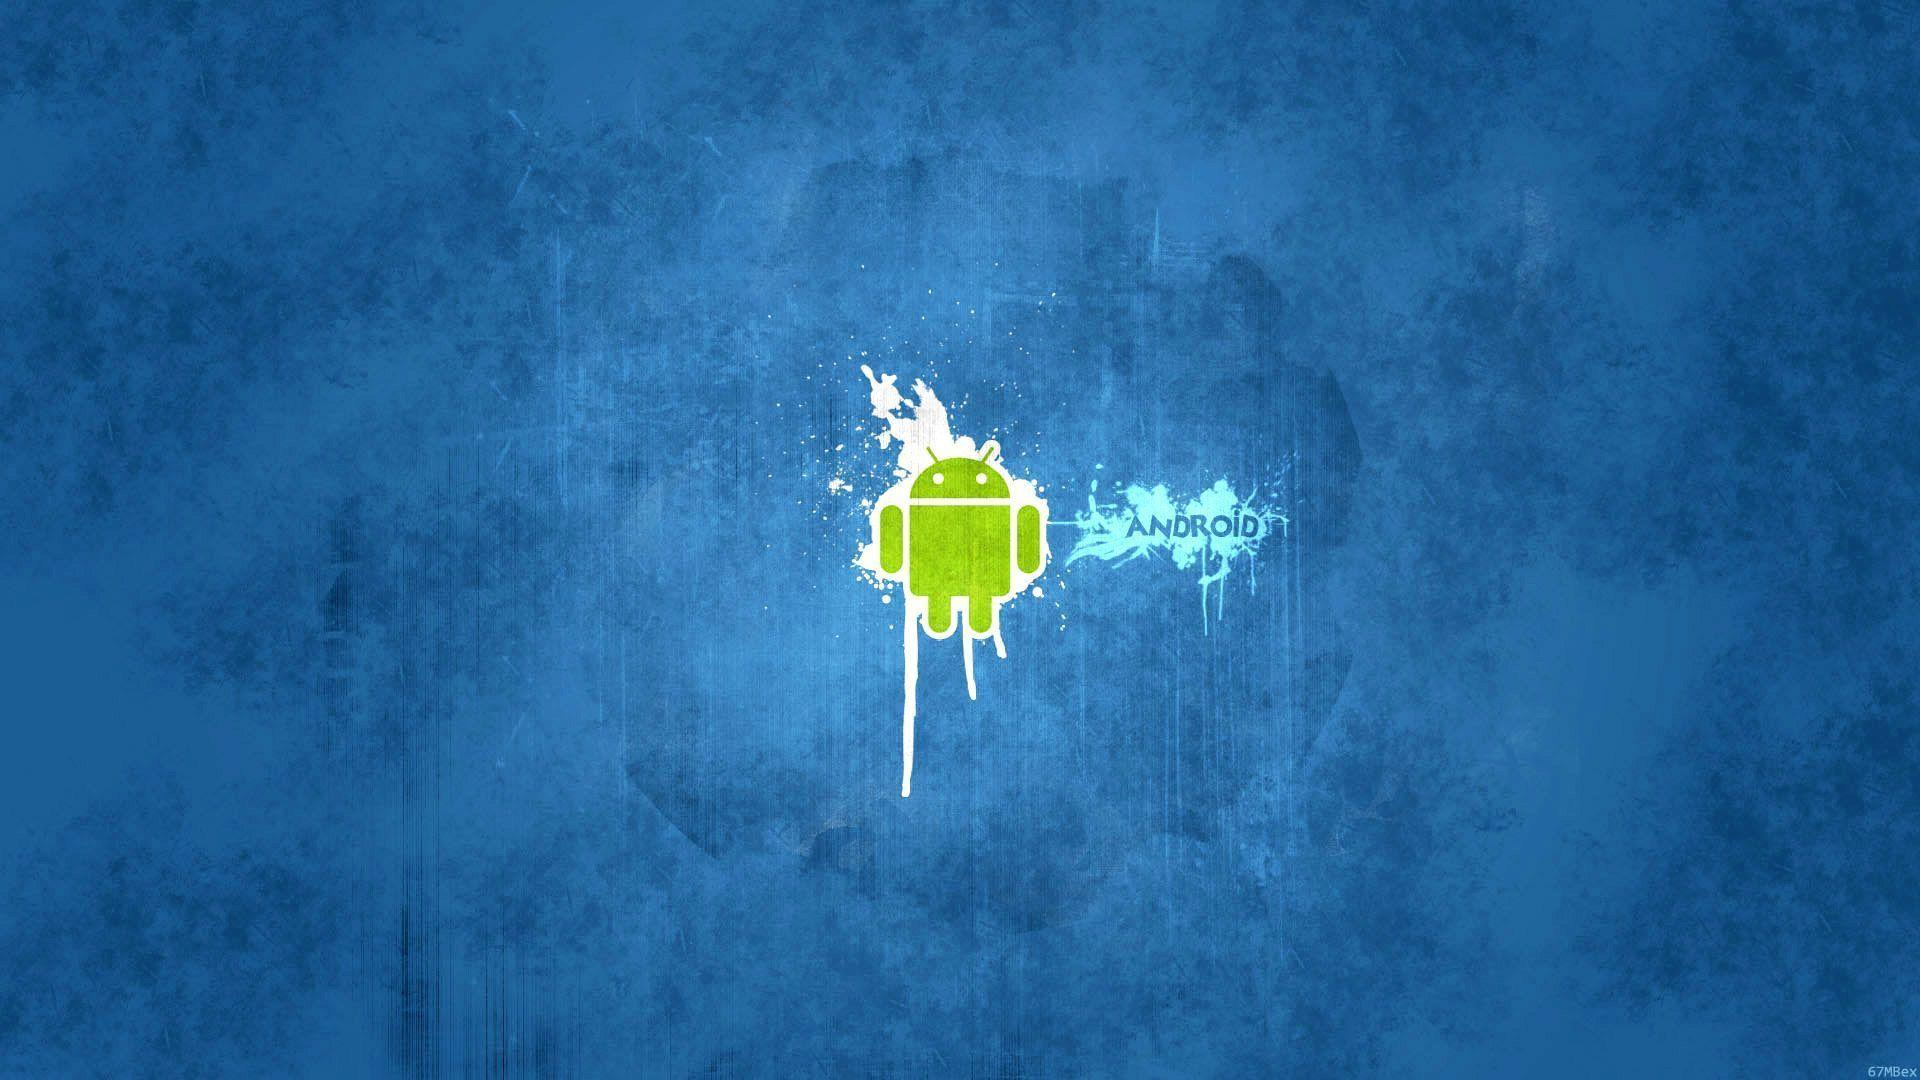 Wallpapers For > Blue Android Wallpapers